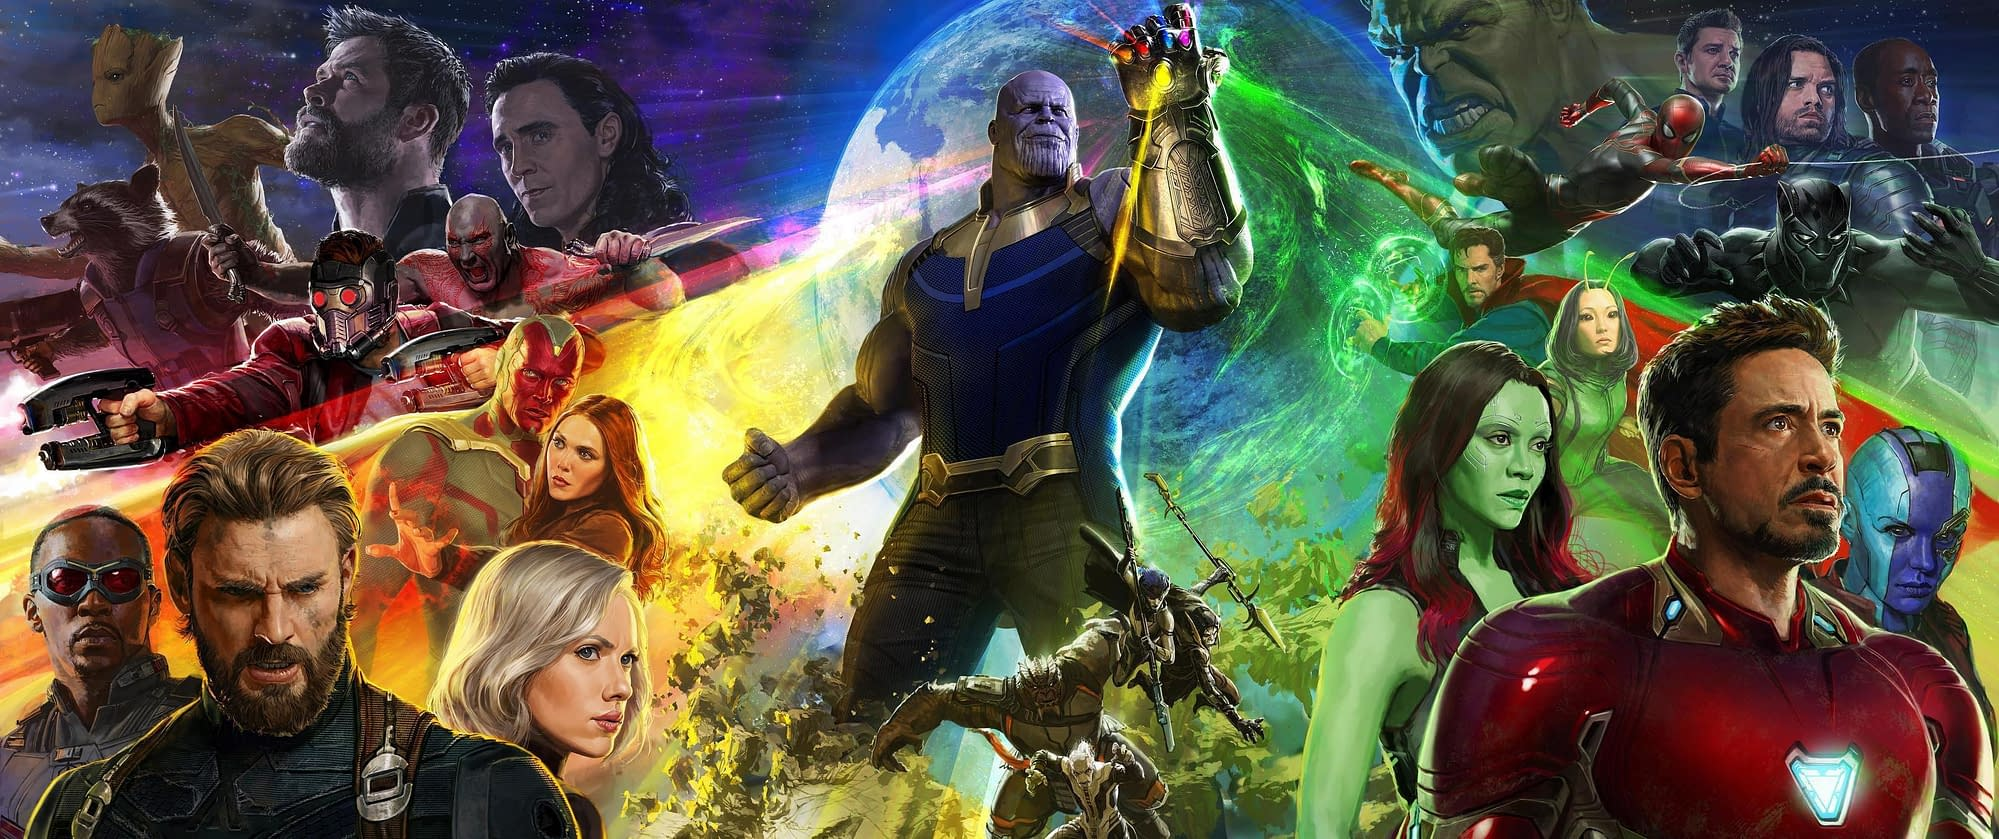 The 'Avengers: Infinity War' Footage Doesn't Spoil 'Thor: Ragnarok'